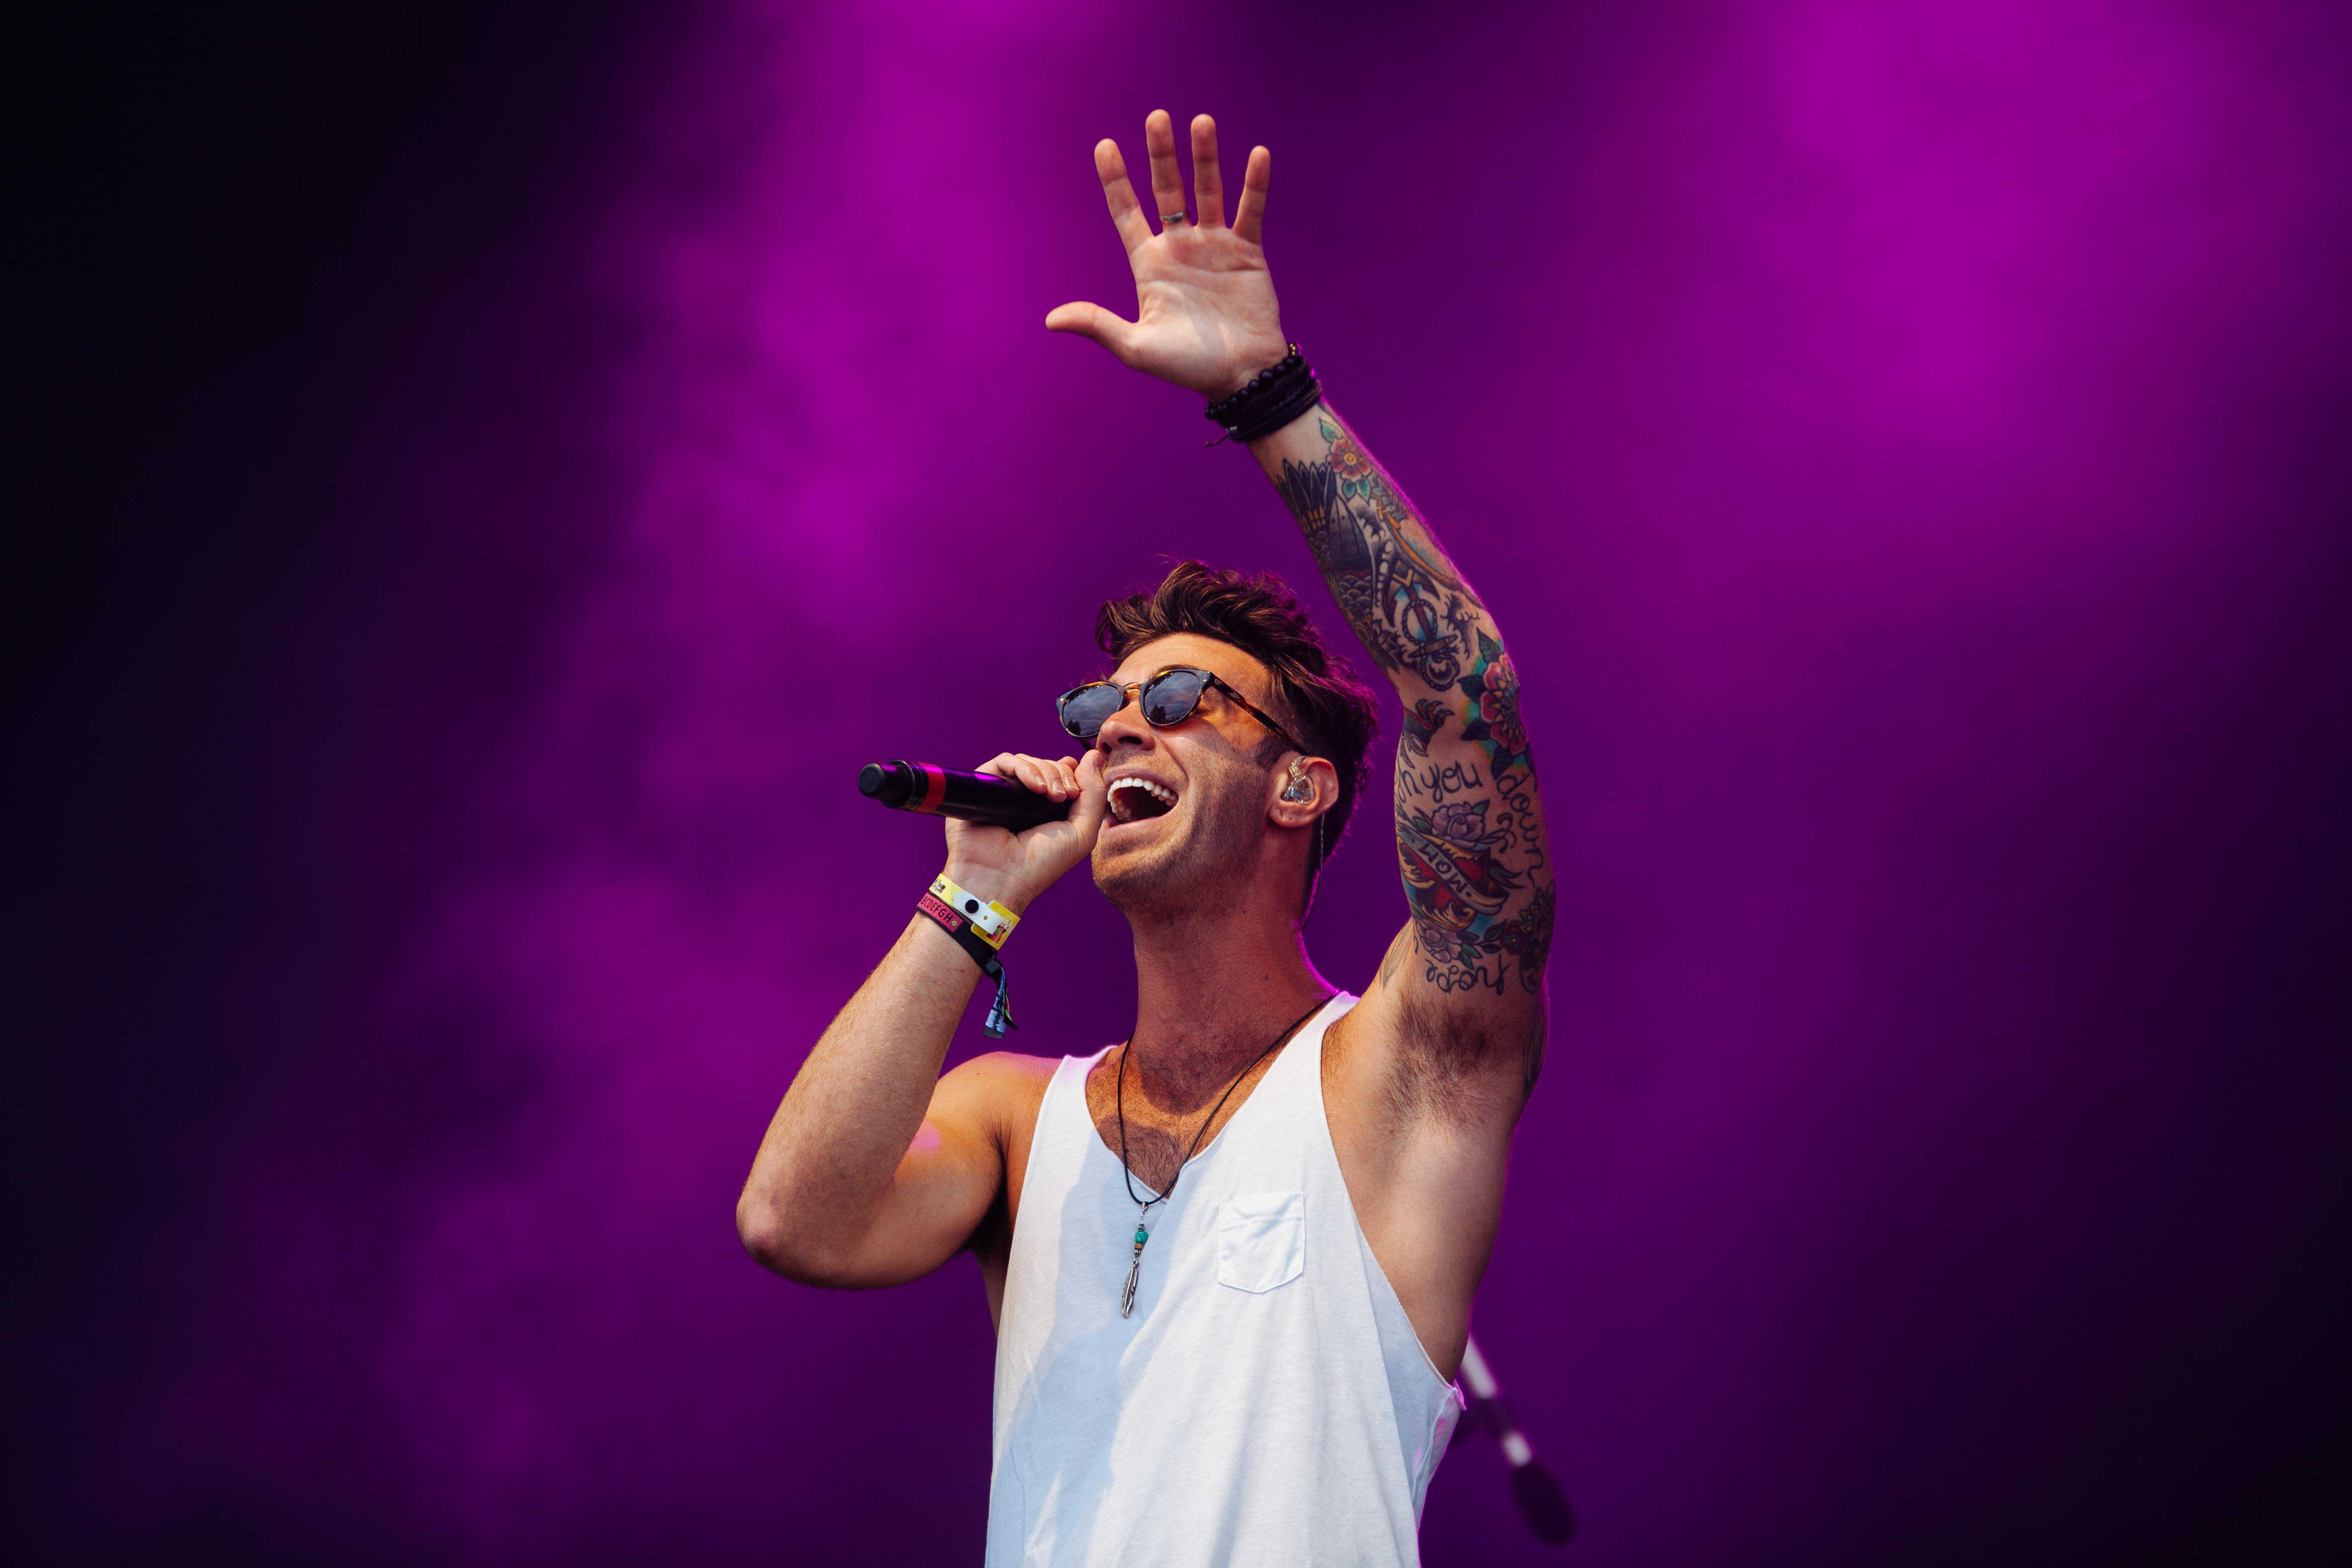 Zac Barnett is the lead singer of American Authors.